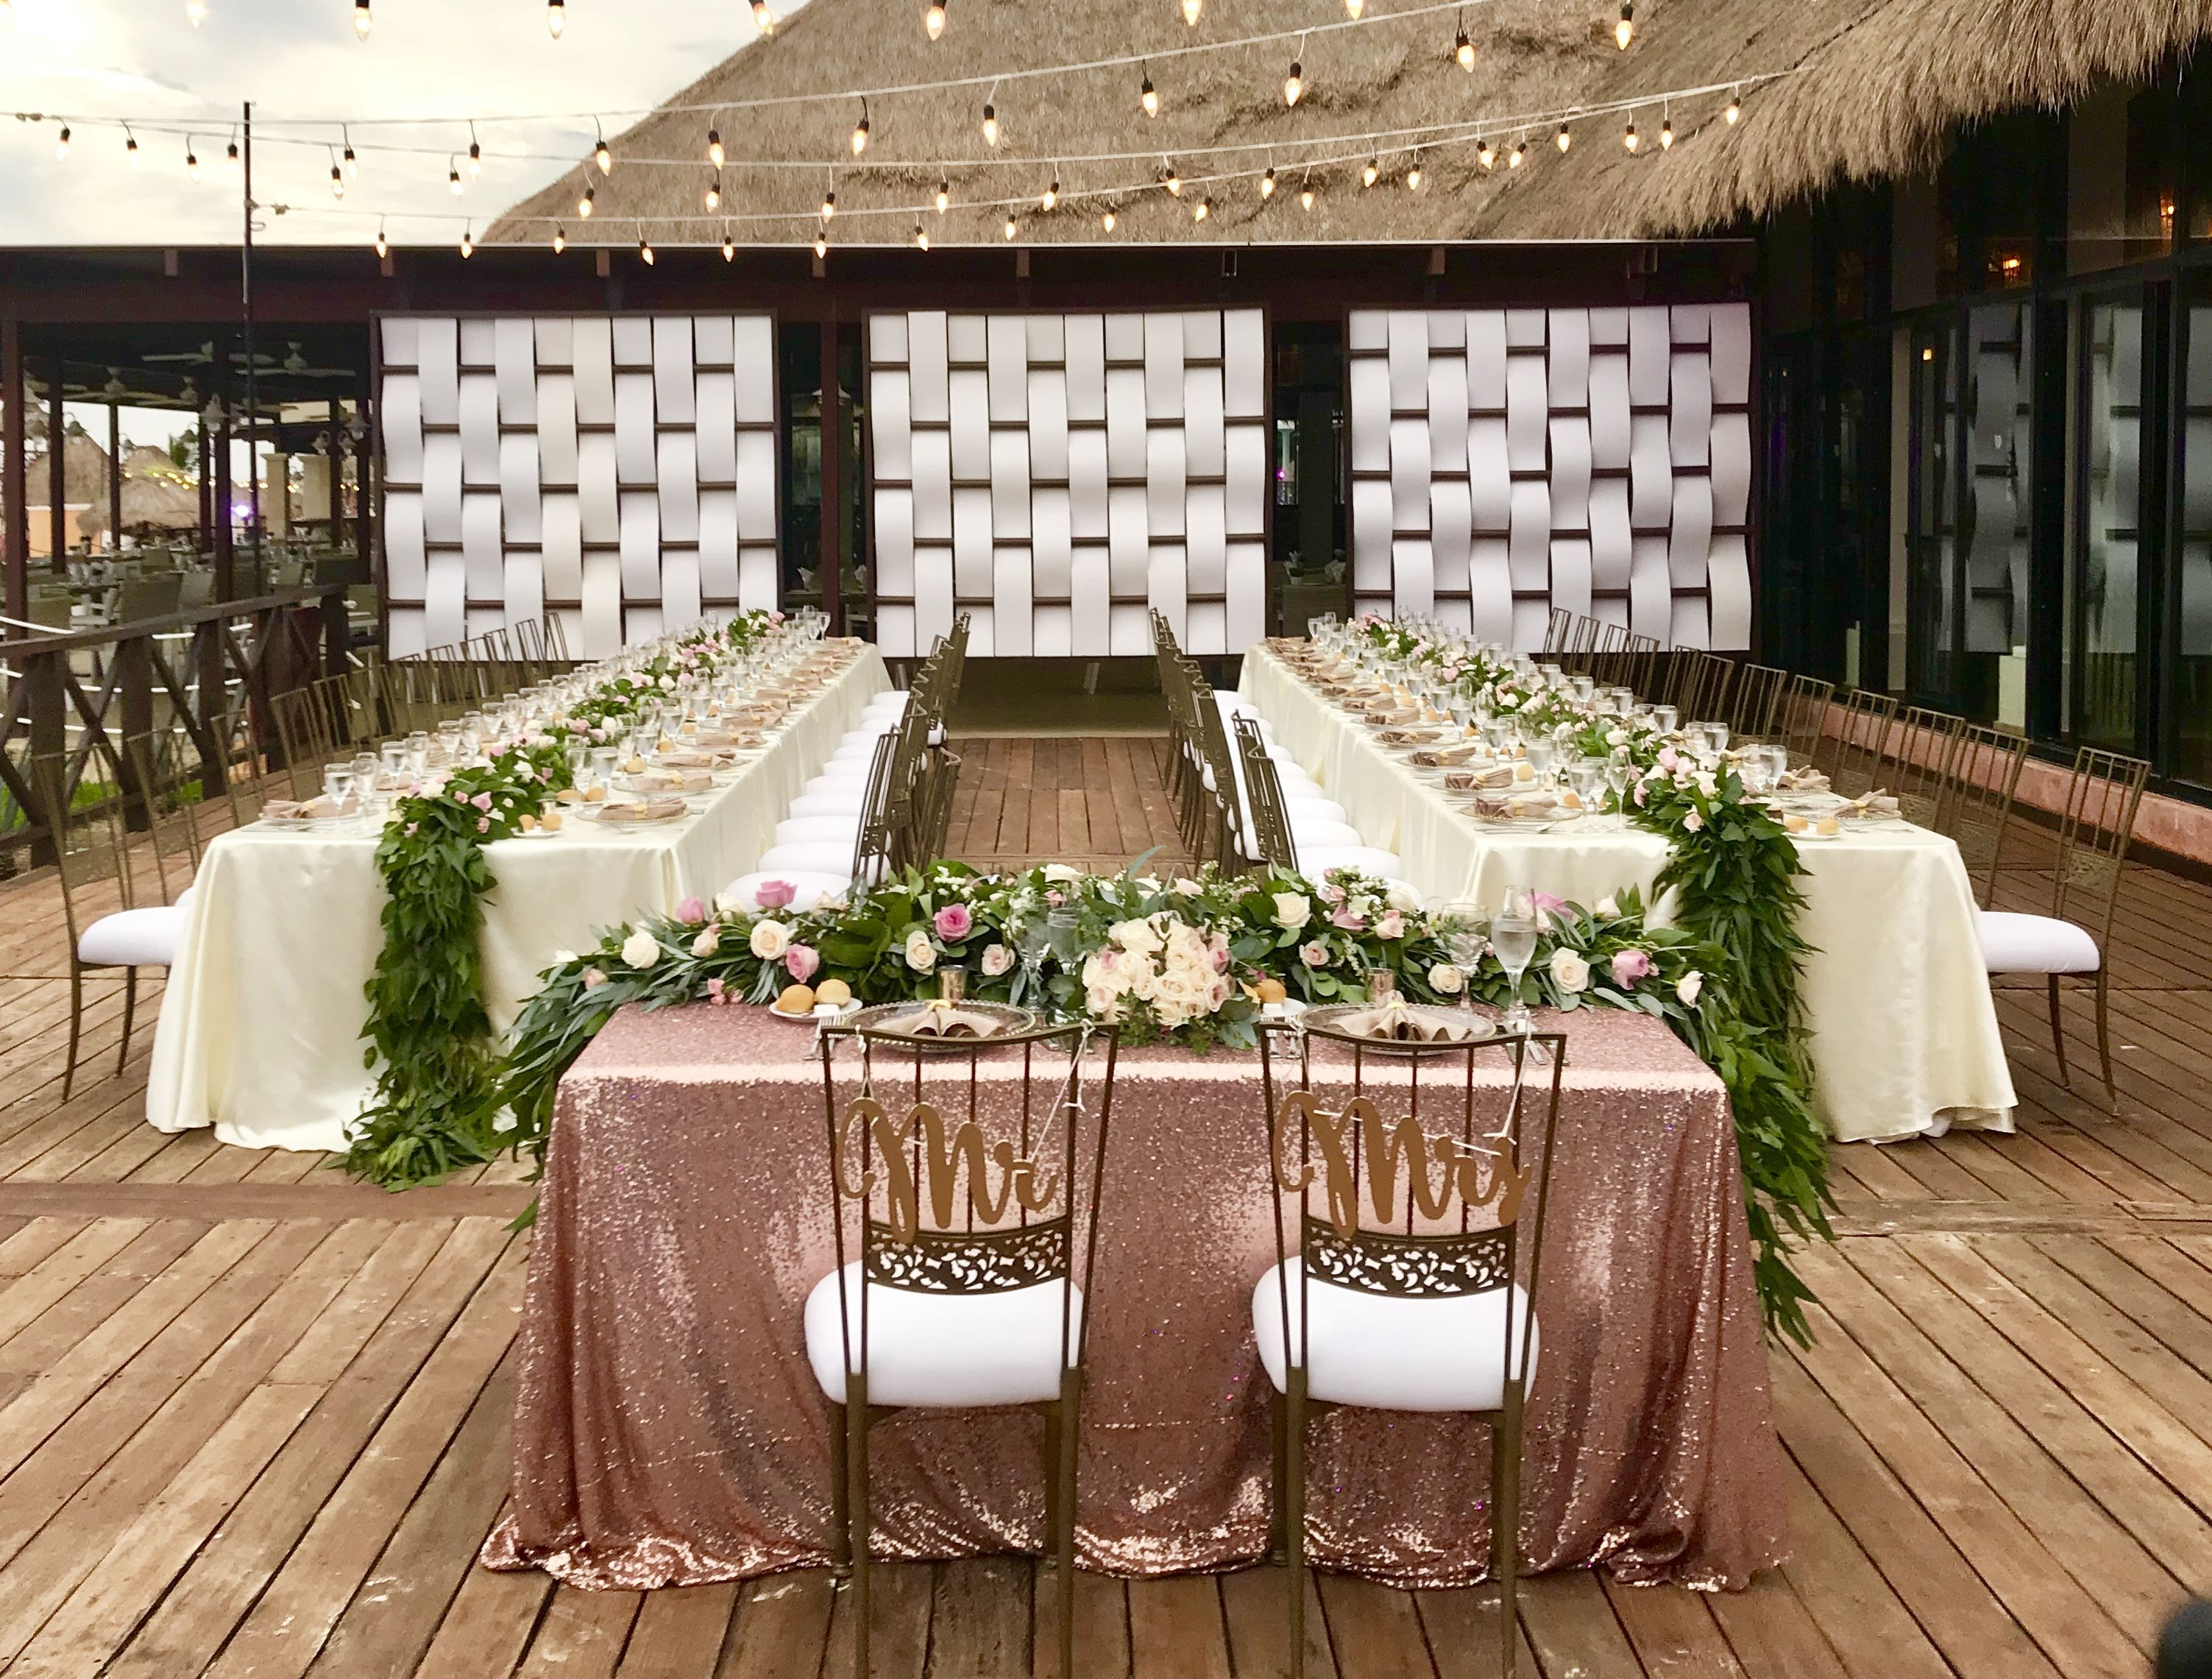 Sweetheart Table And 2 Imperial Tables At The Tequila Terrace Perfect Setup For 60 People Wedding Wedding Reception Tables Wedding Wedding Table Settings